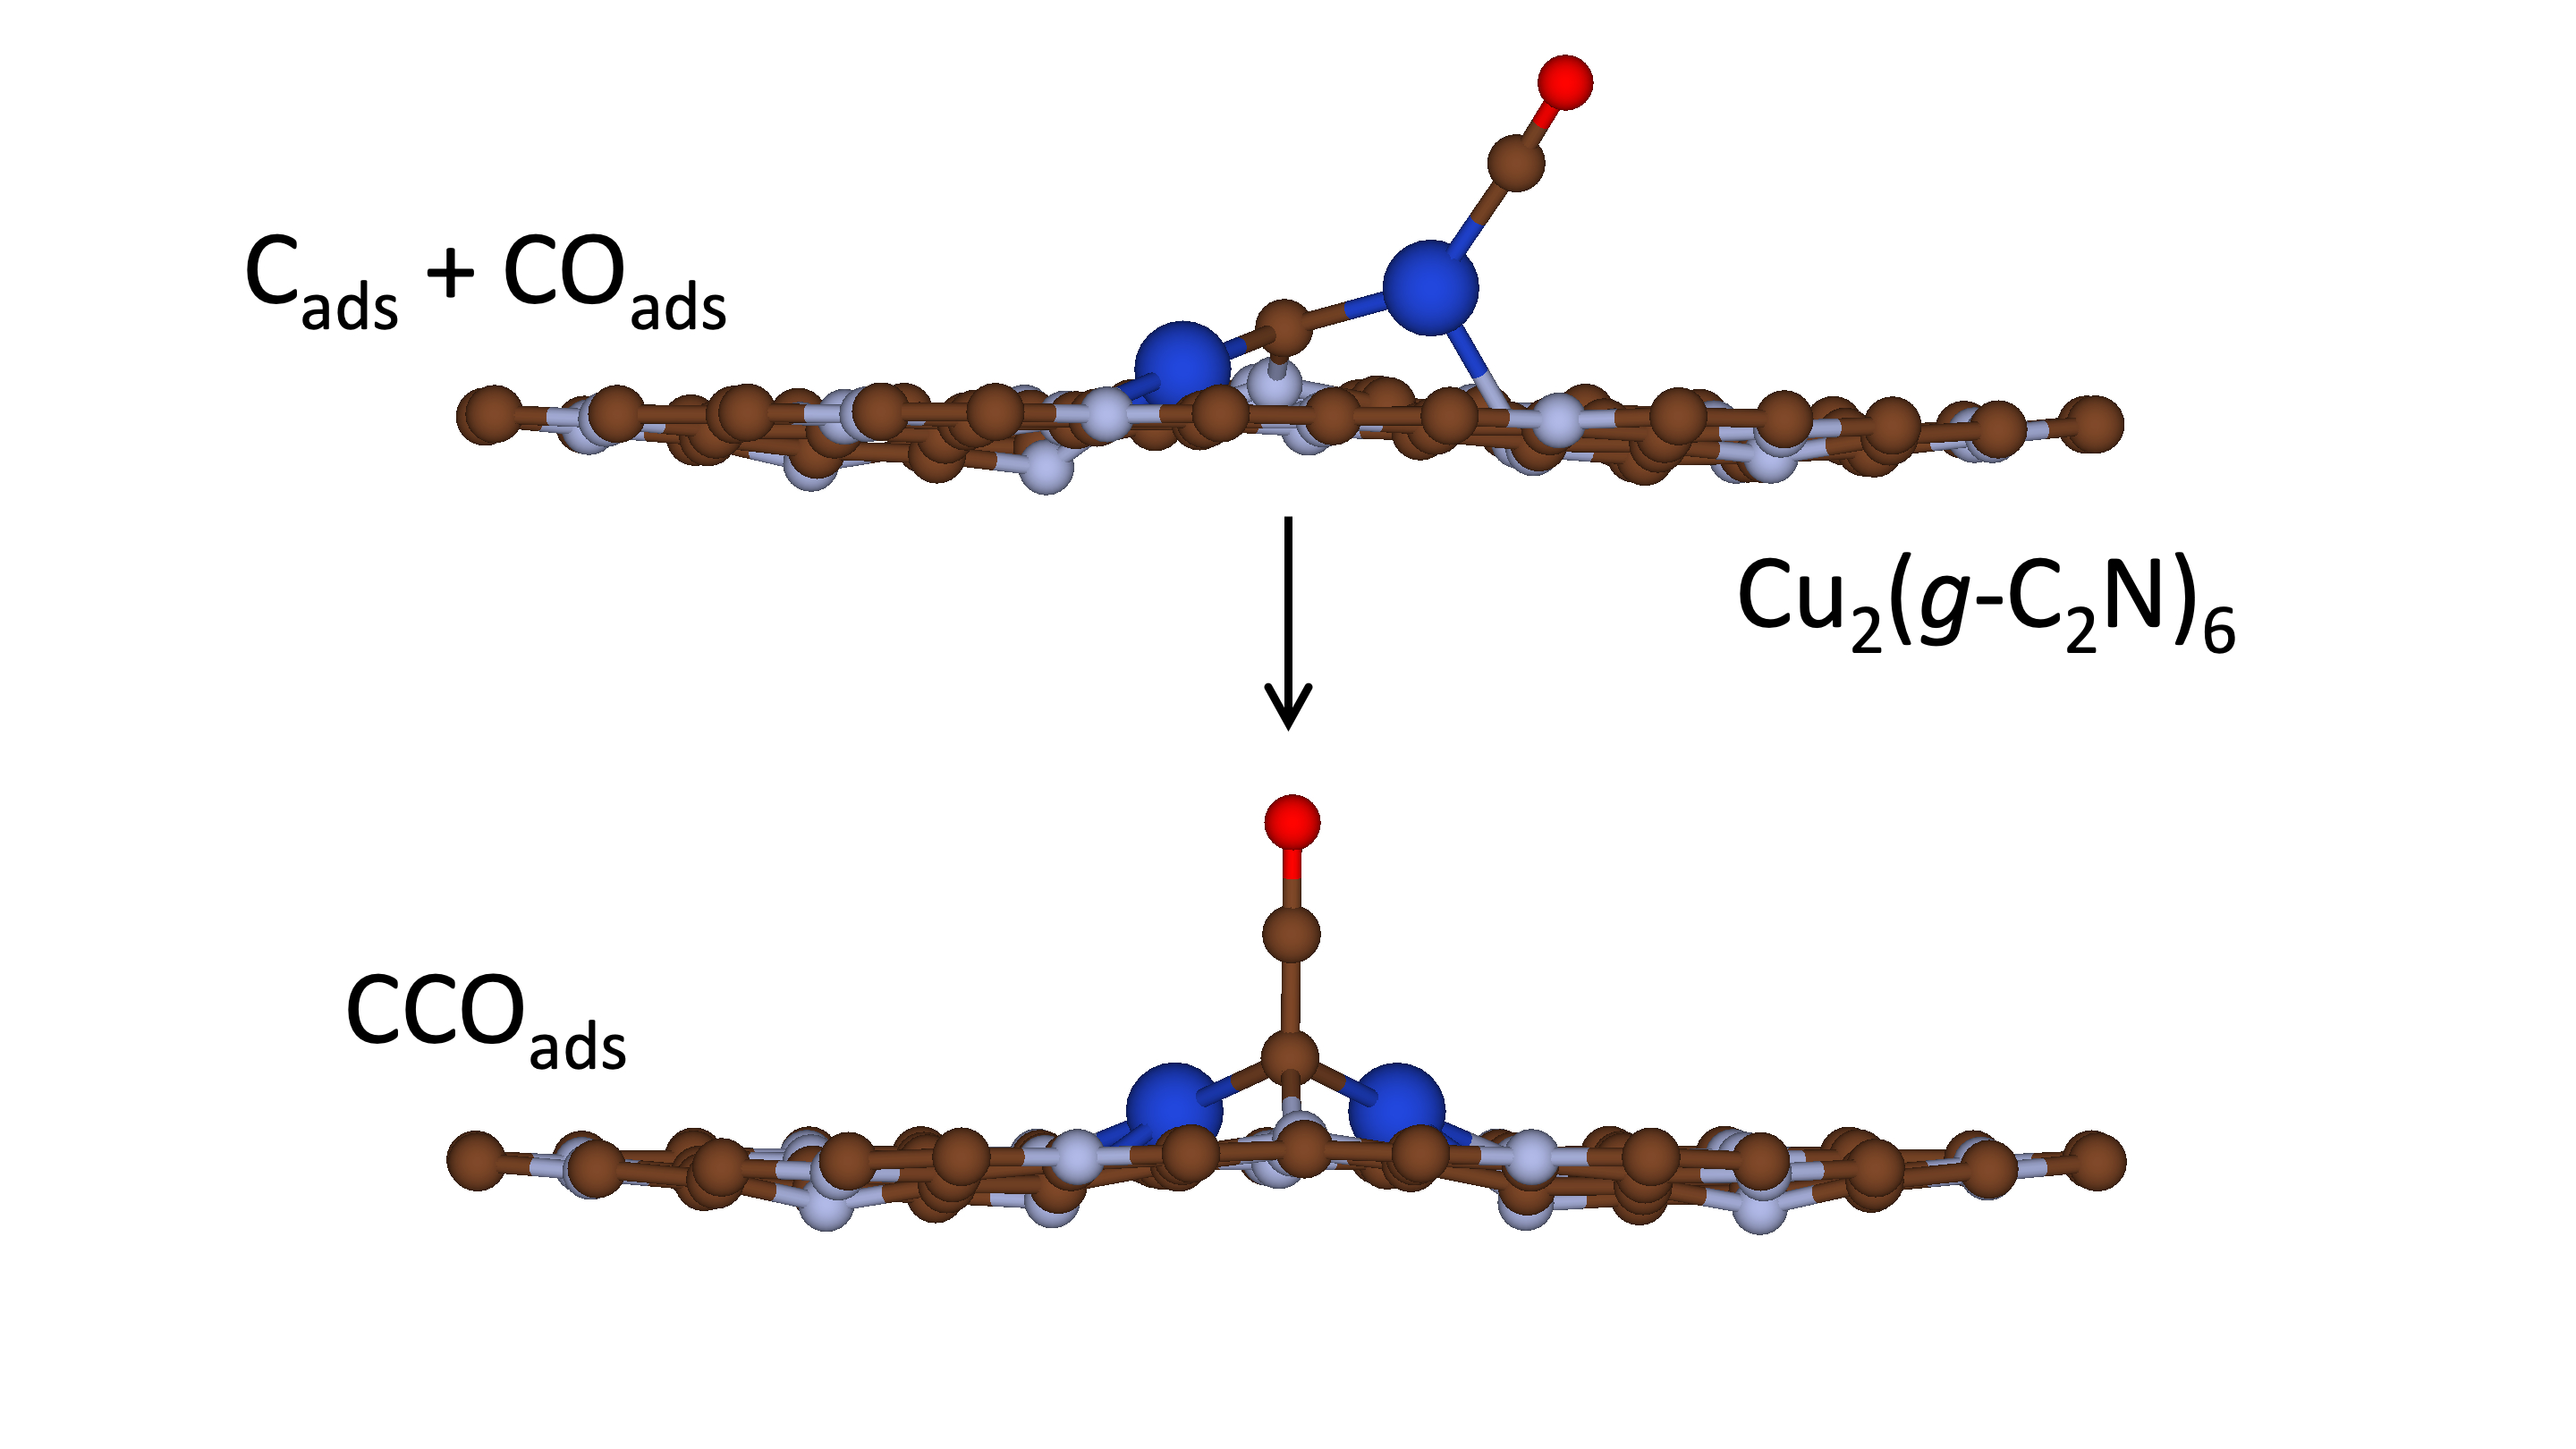 An interesting elementary step of carbon-carbon coupling on the Cu<sub>2</sub>(<i>g</i>-C<sub>2</sub>N)<sub>6</sub> elecctrocatalyst: C + CO → CCO.